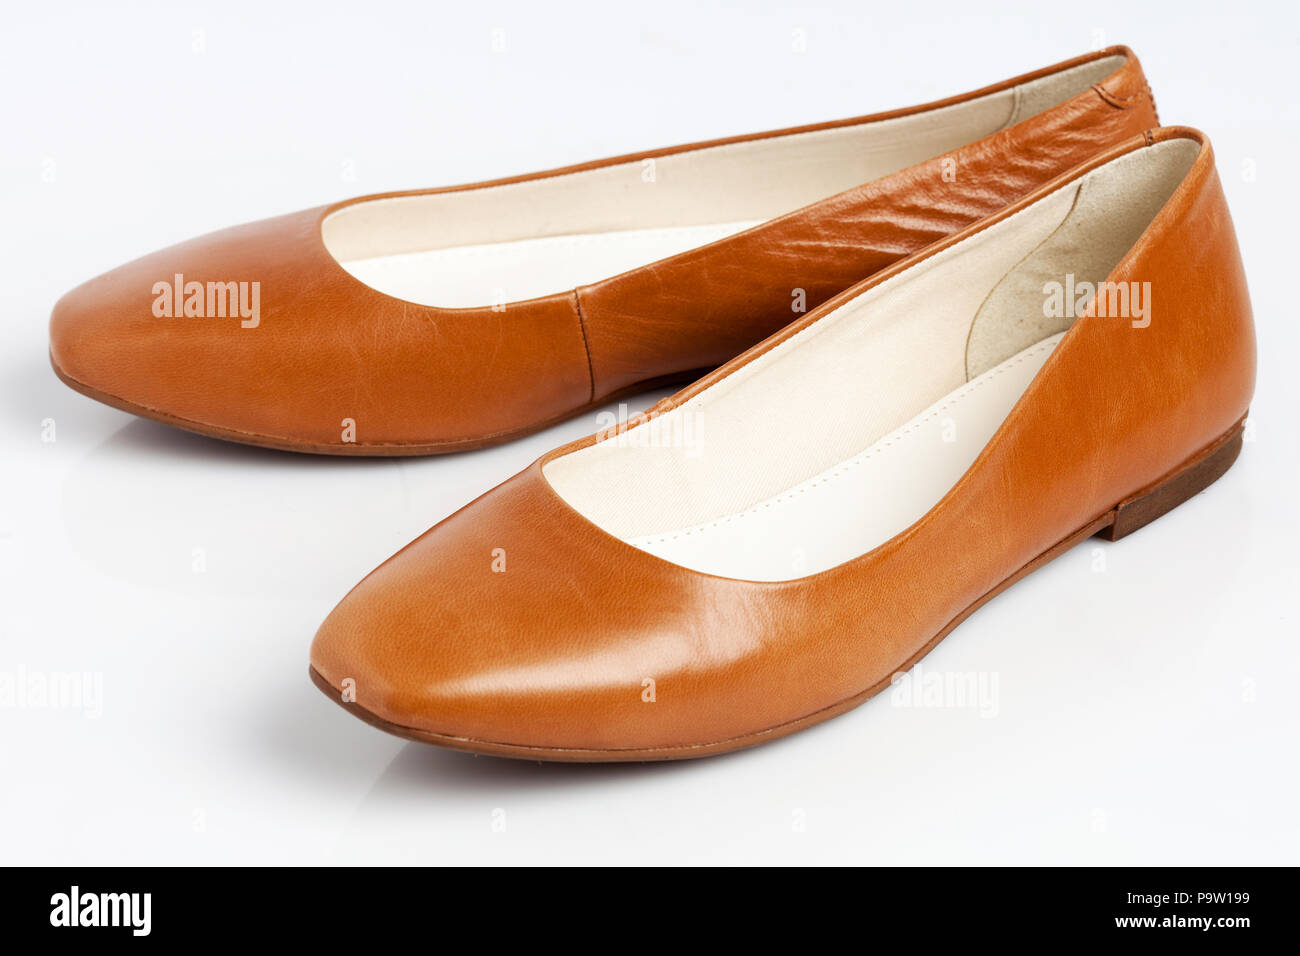 93968504e A pair of ballet flat ladies shoes isolated on white background. - Stock  Image